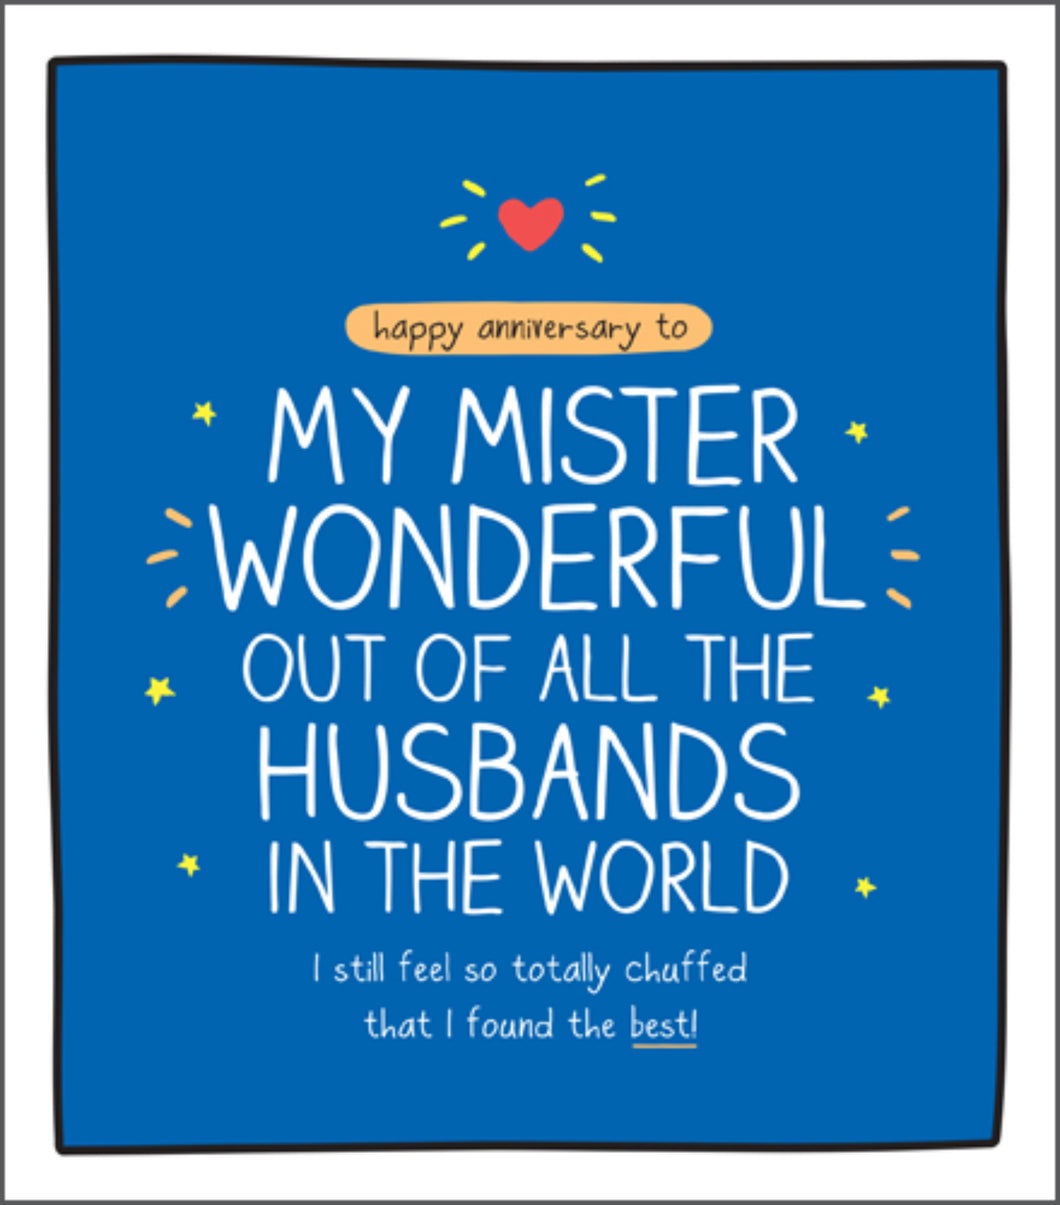 Wonderful Husband, Anniversary card